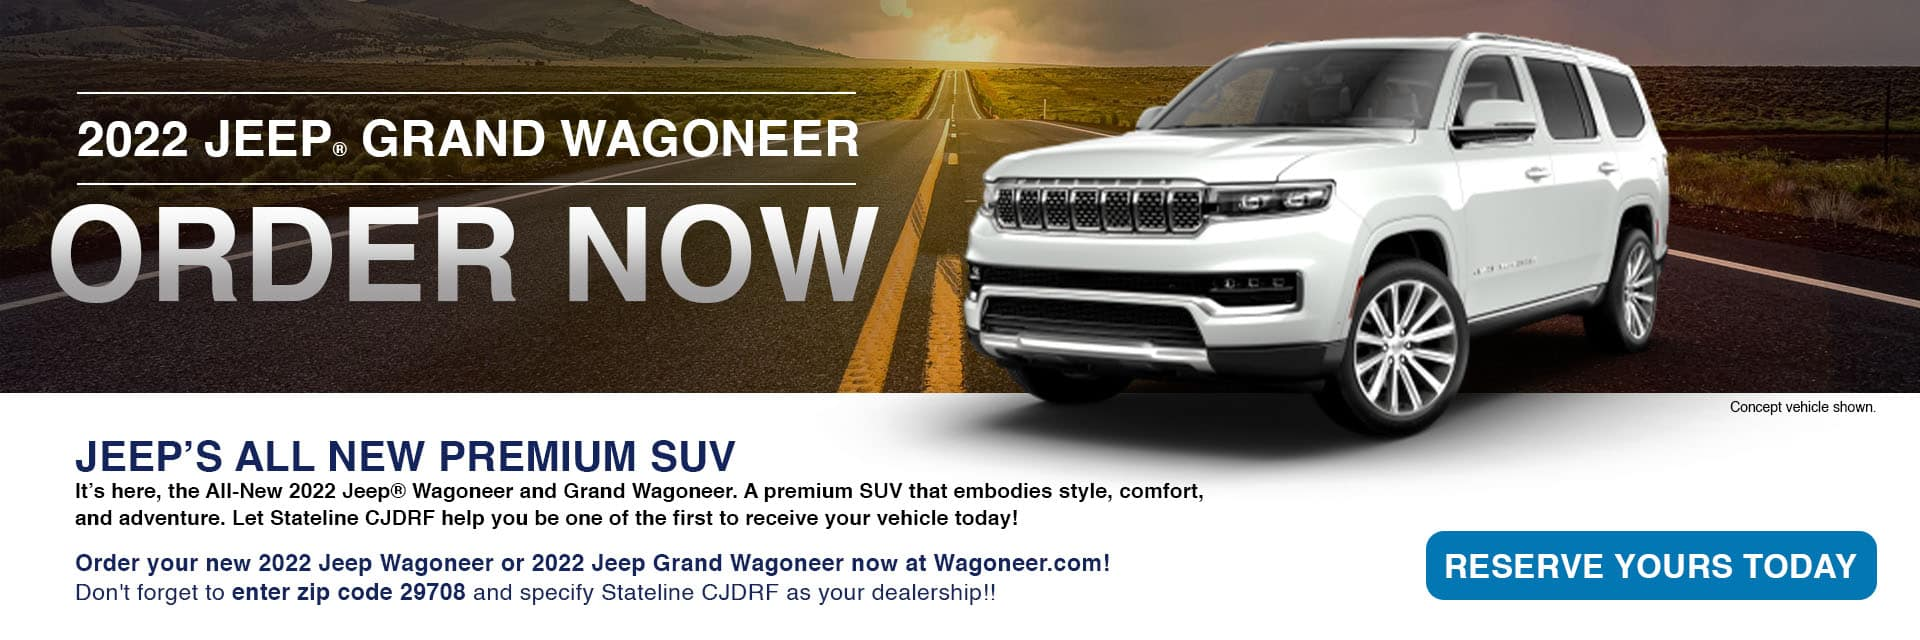 Wagoneer Email Sections1920x640 (2)